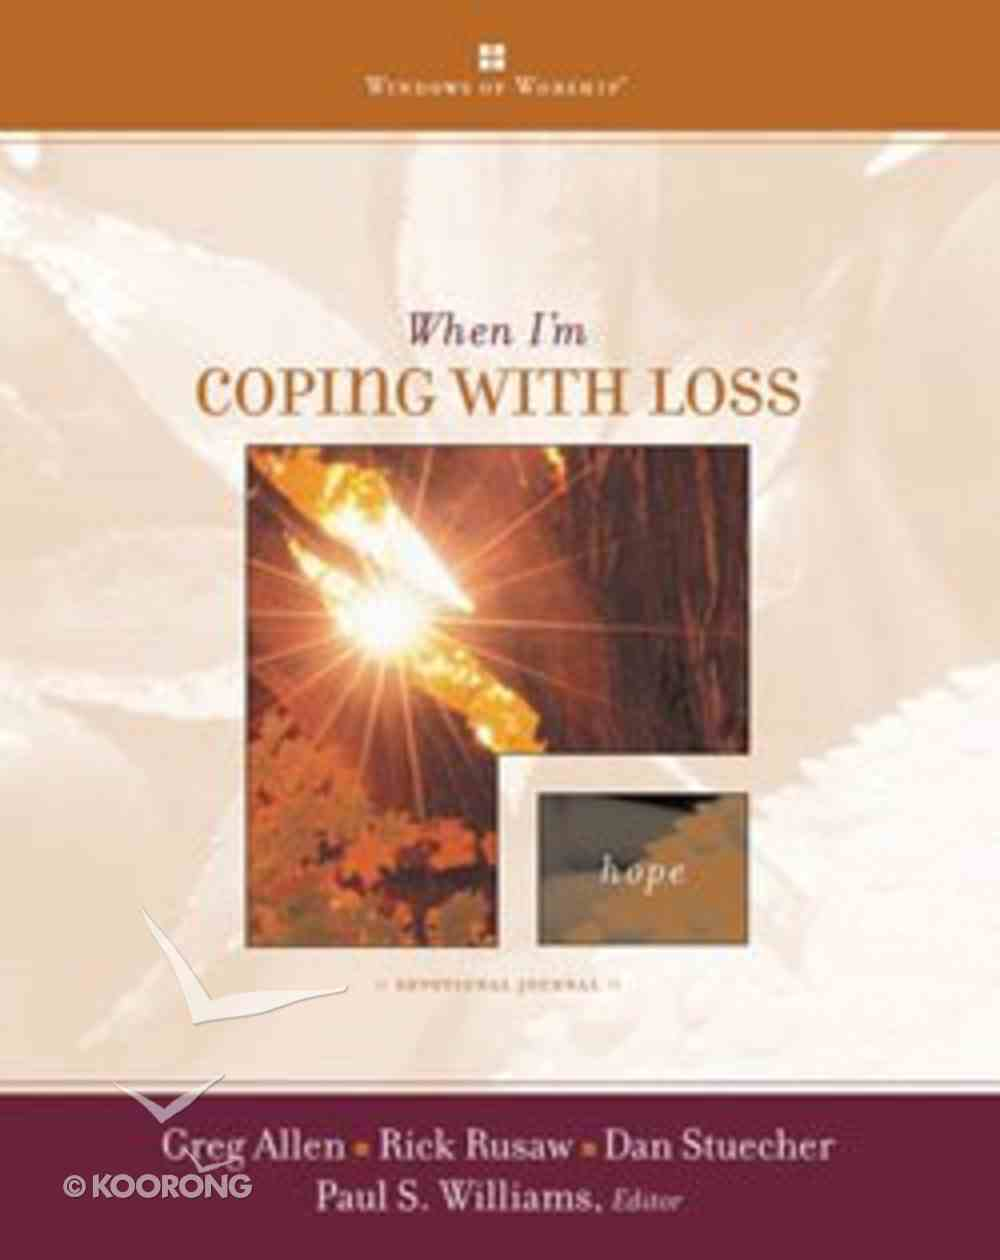 When I'm Coping With Loss (Windows Of Worship Series) Hardback